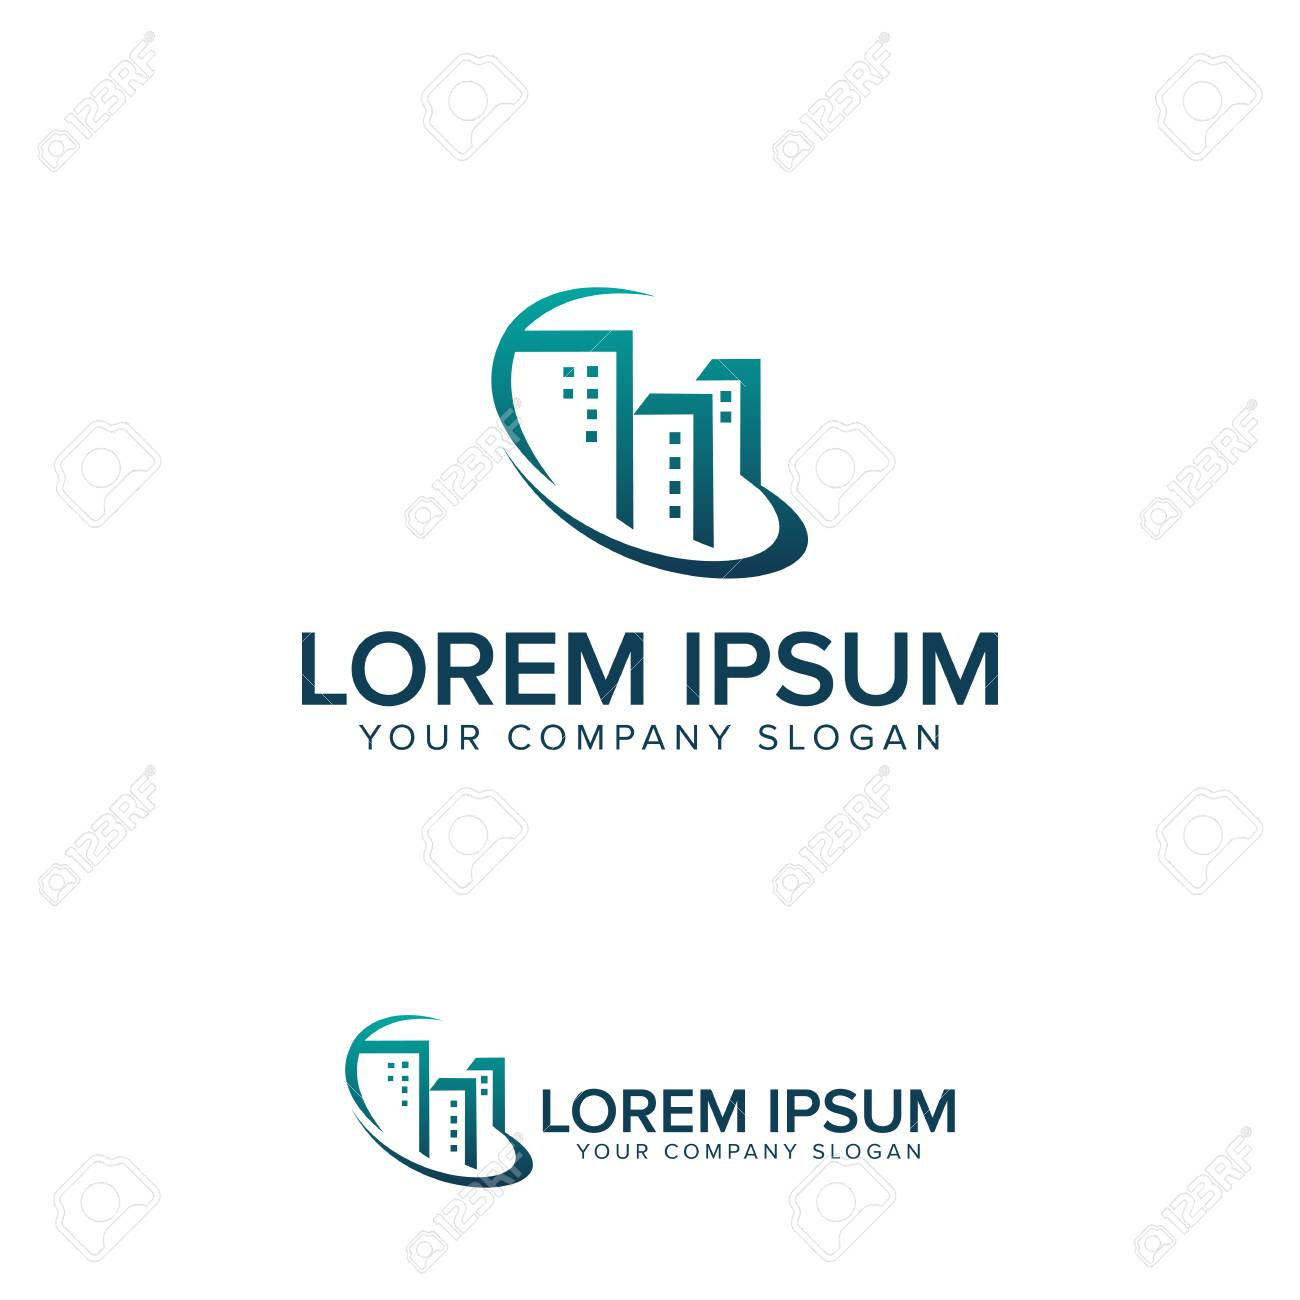 building logo design concept template royalty free cliparts vectors